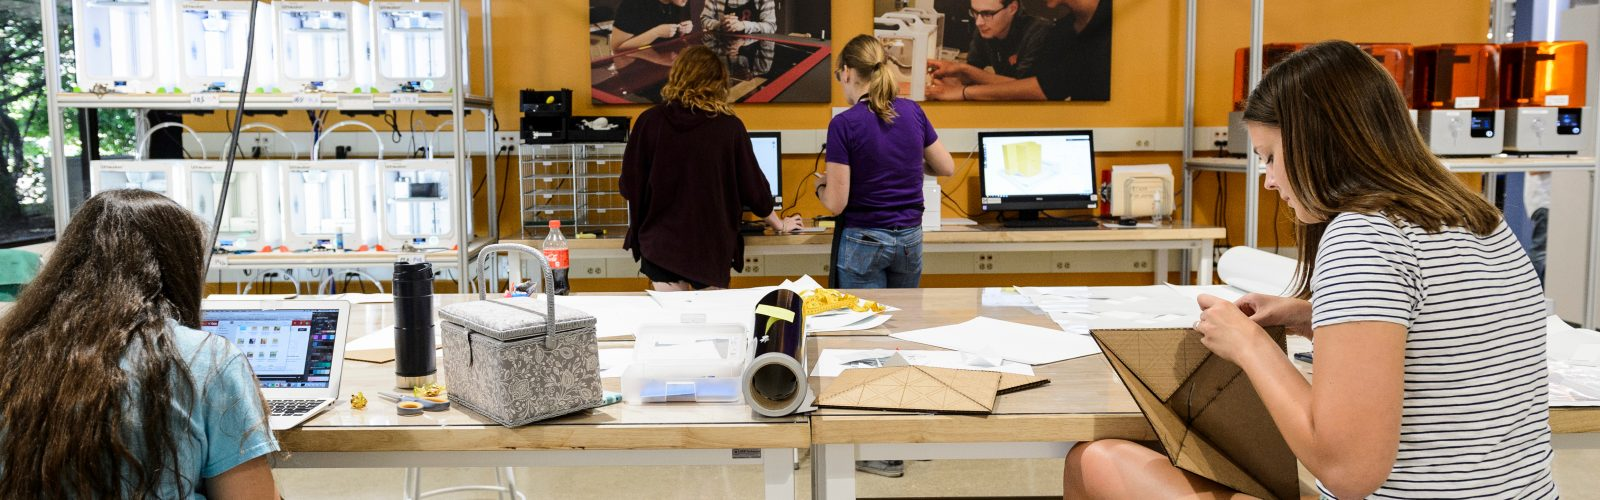 Photo of makerspace with yellow wall and students working